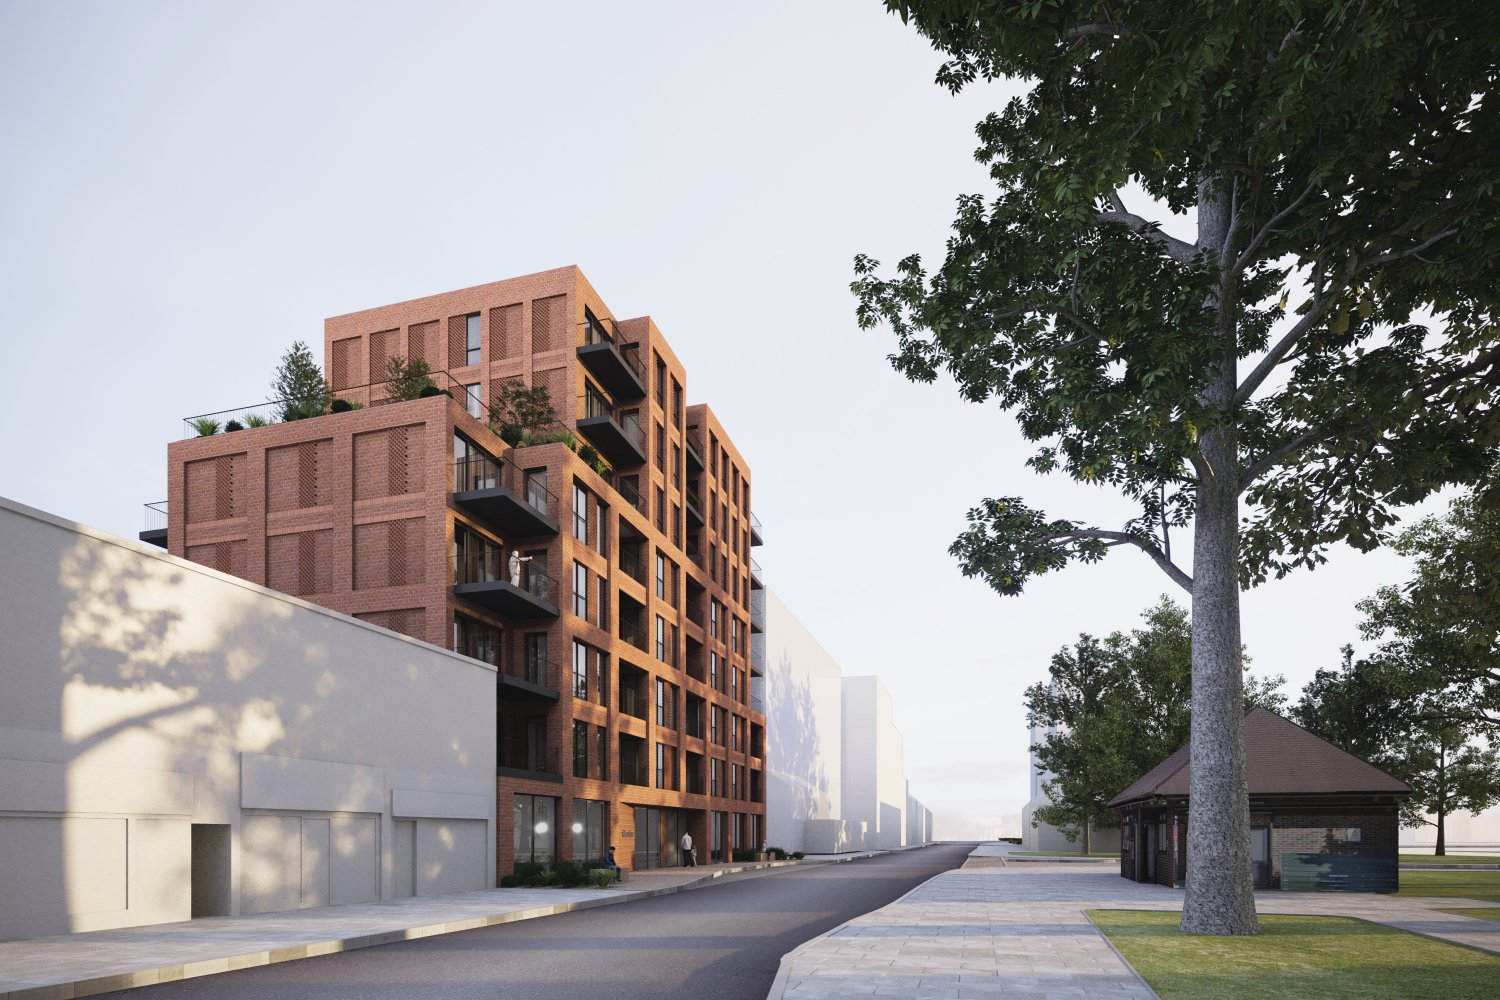 Plans submitted for new residential building in London Borough of Sutton